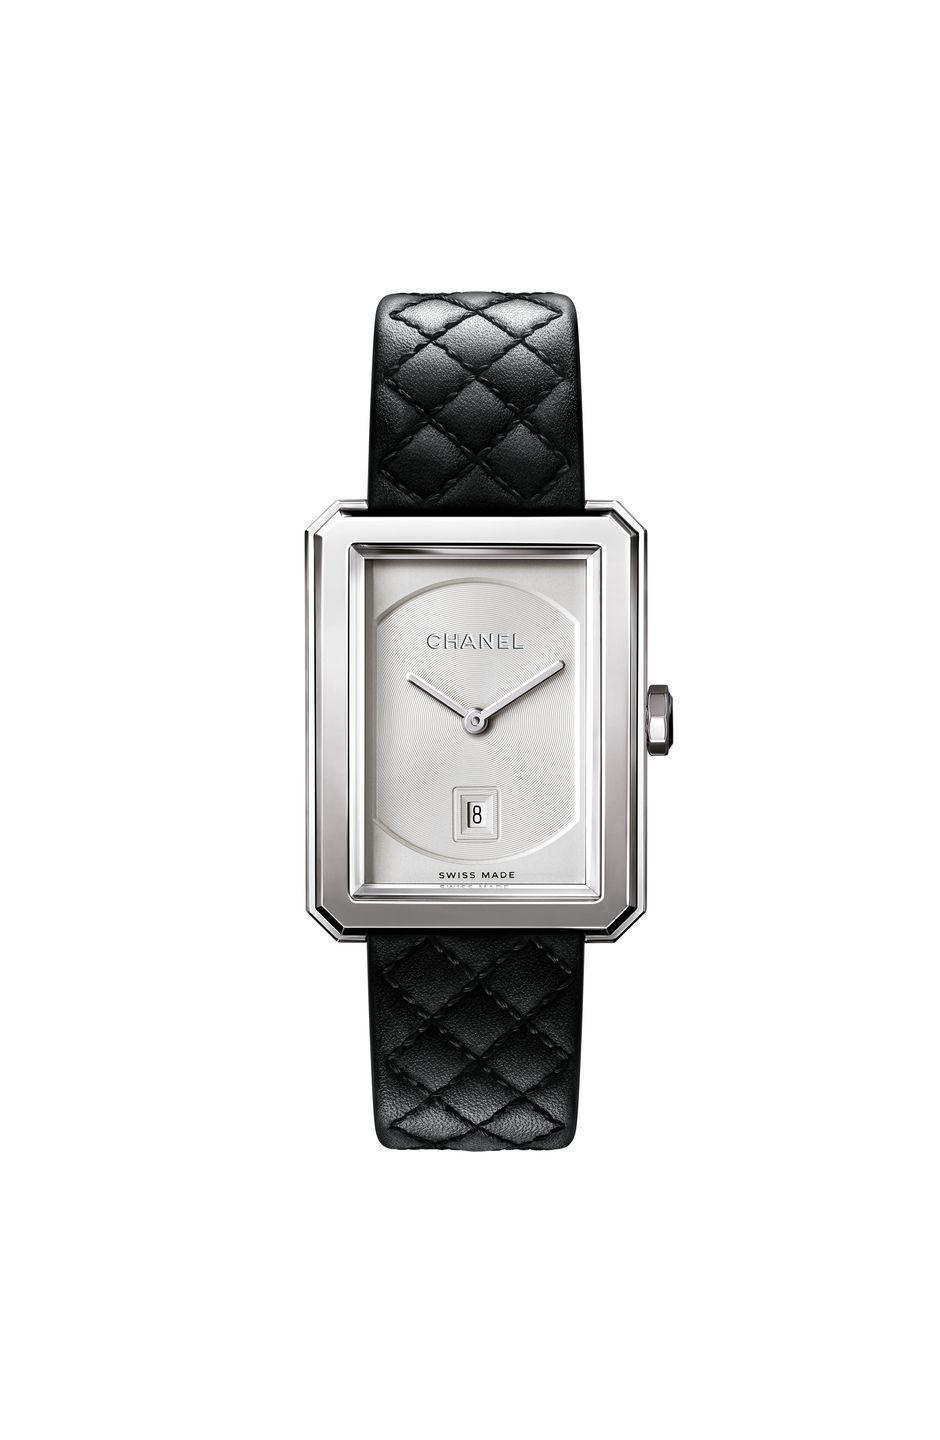 "<p><a class=""link rapid-noclick-resp"" href=""https://go.redirectingat.com?id=127X1599956&url=https%3A%2F%2Fwww.chanel.com%2Fgb%2Fwatches%2Fp%2FH6954%2Fboy-friend-watch%2F&sref=https%3A%2F%2Fwww.harpersbazaar.com%2Fuk%2Ffashion%2Fjewellery-watches%2Fg37474%2Fbest-womens-watches%2F"" rel=""nofollow noopener"" target=""_blank"" data-ylk=""slk:SHOP NOW"">SHOP NOW</a></p><p>Chanel's boxy Boy.Friend watch only launched in 2015, but it's already considered a fashion classic. Its name refers to the couturière's love for appropriating masculine tailoring and fabrics into her own designs and its octagonal case is a nod to the iconic Chanel No.5 bottle stopper, itself a riff on the graphic outline of Paris' Place Vendôme. </p><p>This year's model features an engraved guilloché dial, a black quilted leather strap (a nod to yet another house staple, the brand's quilted leather handbags) and a black spinel cabochon set into its crown. Very chic. Very Chanel. </p><p>Boy.Friend watch in steel, £3,700, <a href=""https://go.redirectingat.com?id=127X1599956&url=https%3A%2F%2Fwww.chanel.com%2Fgb%2Fwatches%2Fp%2FH6954%2Fboy-friend-watch%2F&sref=https%3A%2F%2Fwww.harpersbazaar.com%2Fuk%2Ffashion%2Fjewellery-watches%2Fg37474%2Fbest-womens-watches%2F"" rel=""nofollow noopener"" target=""_blank"" data-ylk=""slk:Chanel"" class=""link rapid-noclick-resp"">Chanel</a></p>"